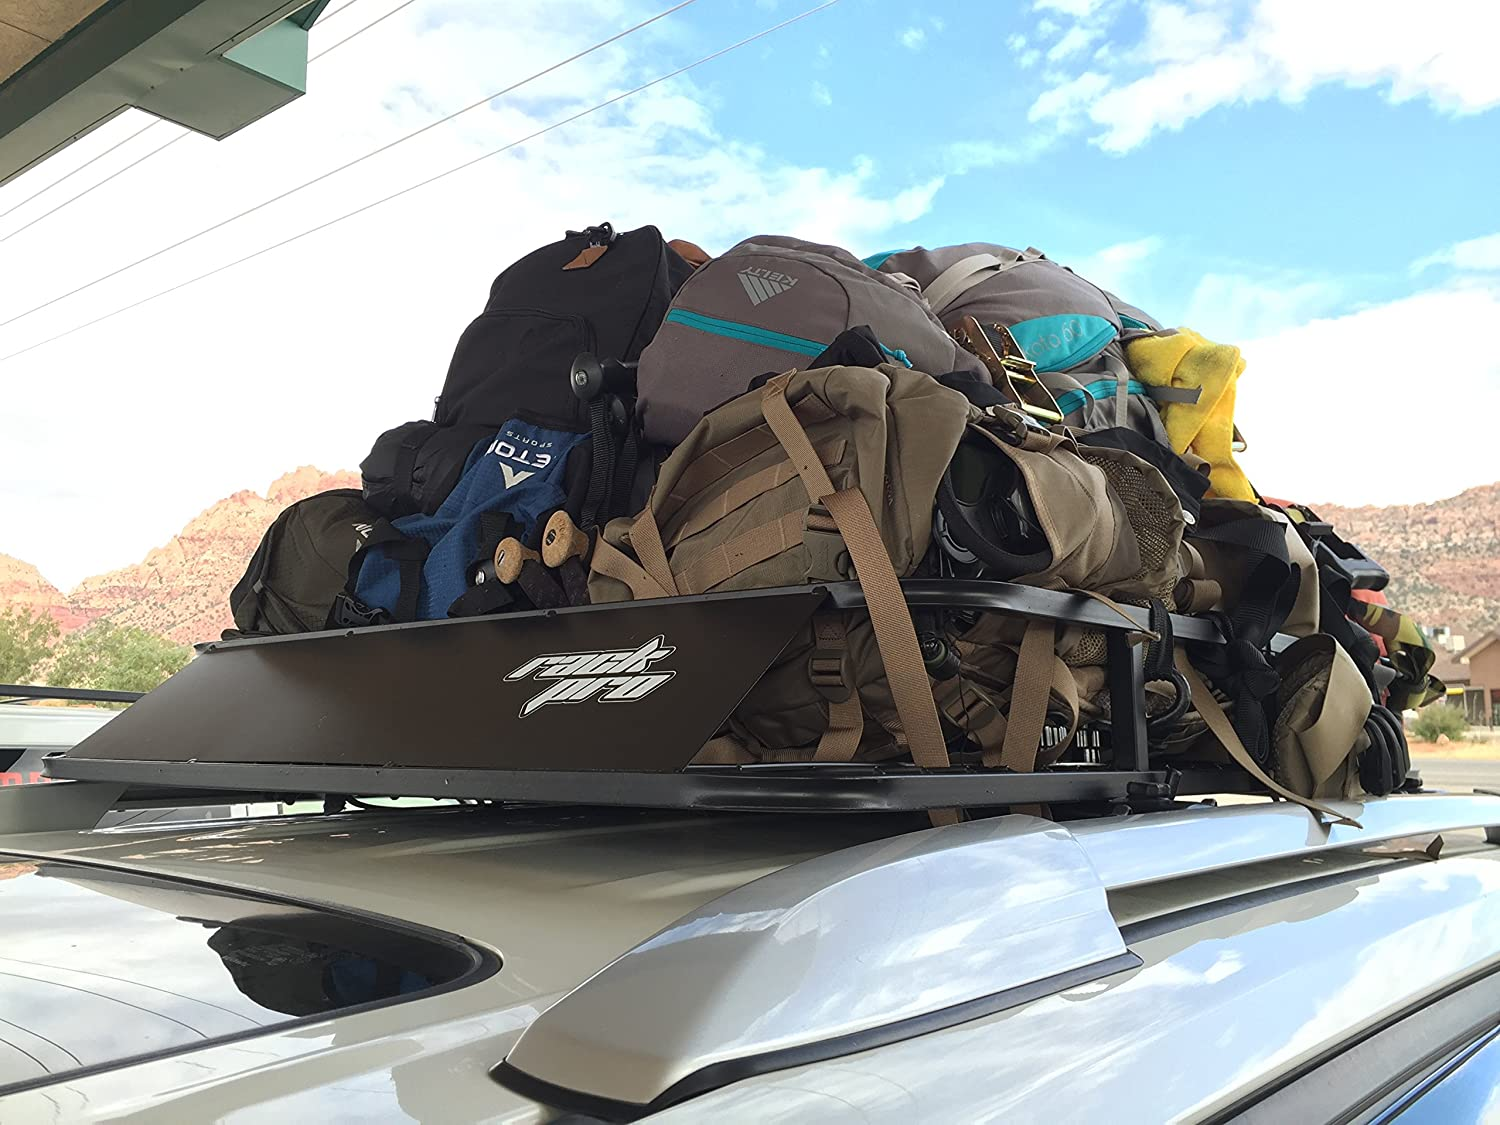 Amazon.com: Universal Roof Rack Cargo Car Top Luggage Carrier ...